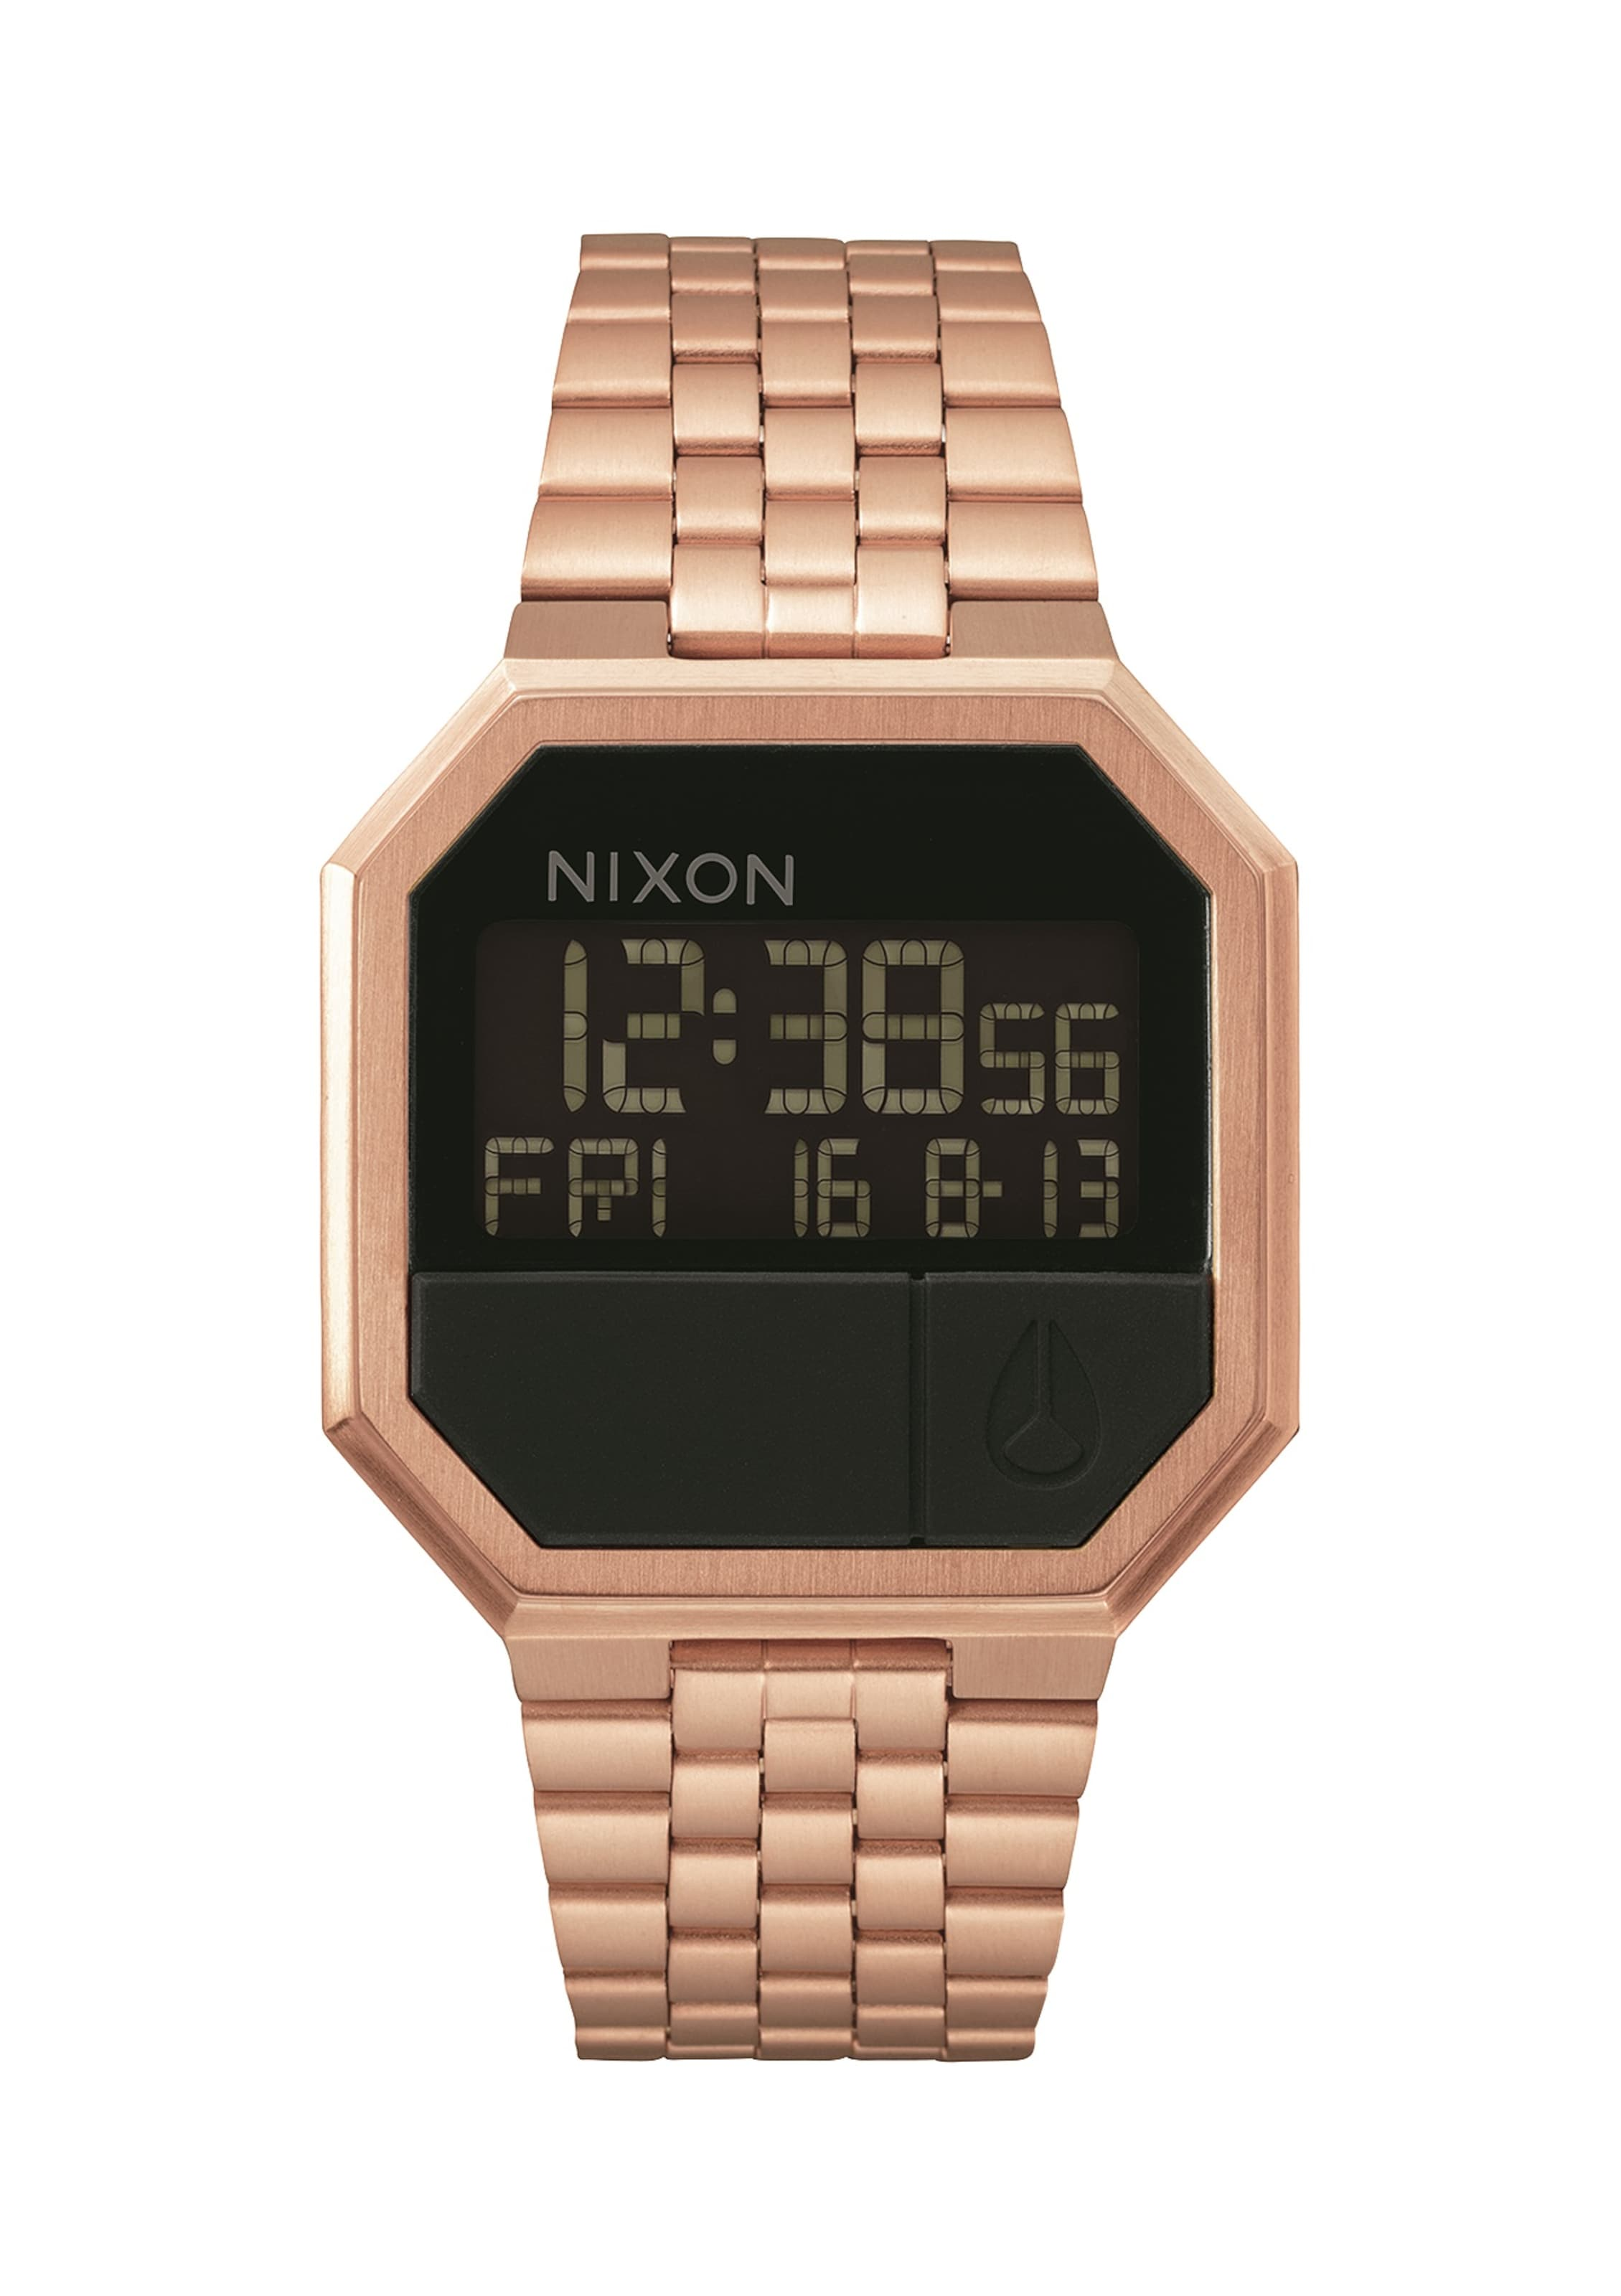 're Horloge Nixon GoudZwart Digitaal run' In ONn0wmv8